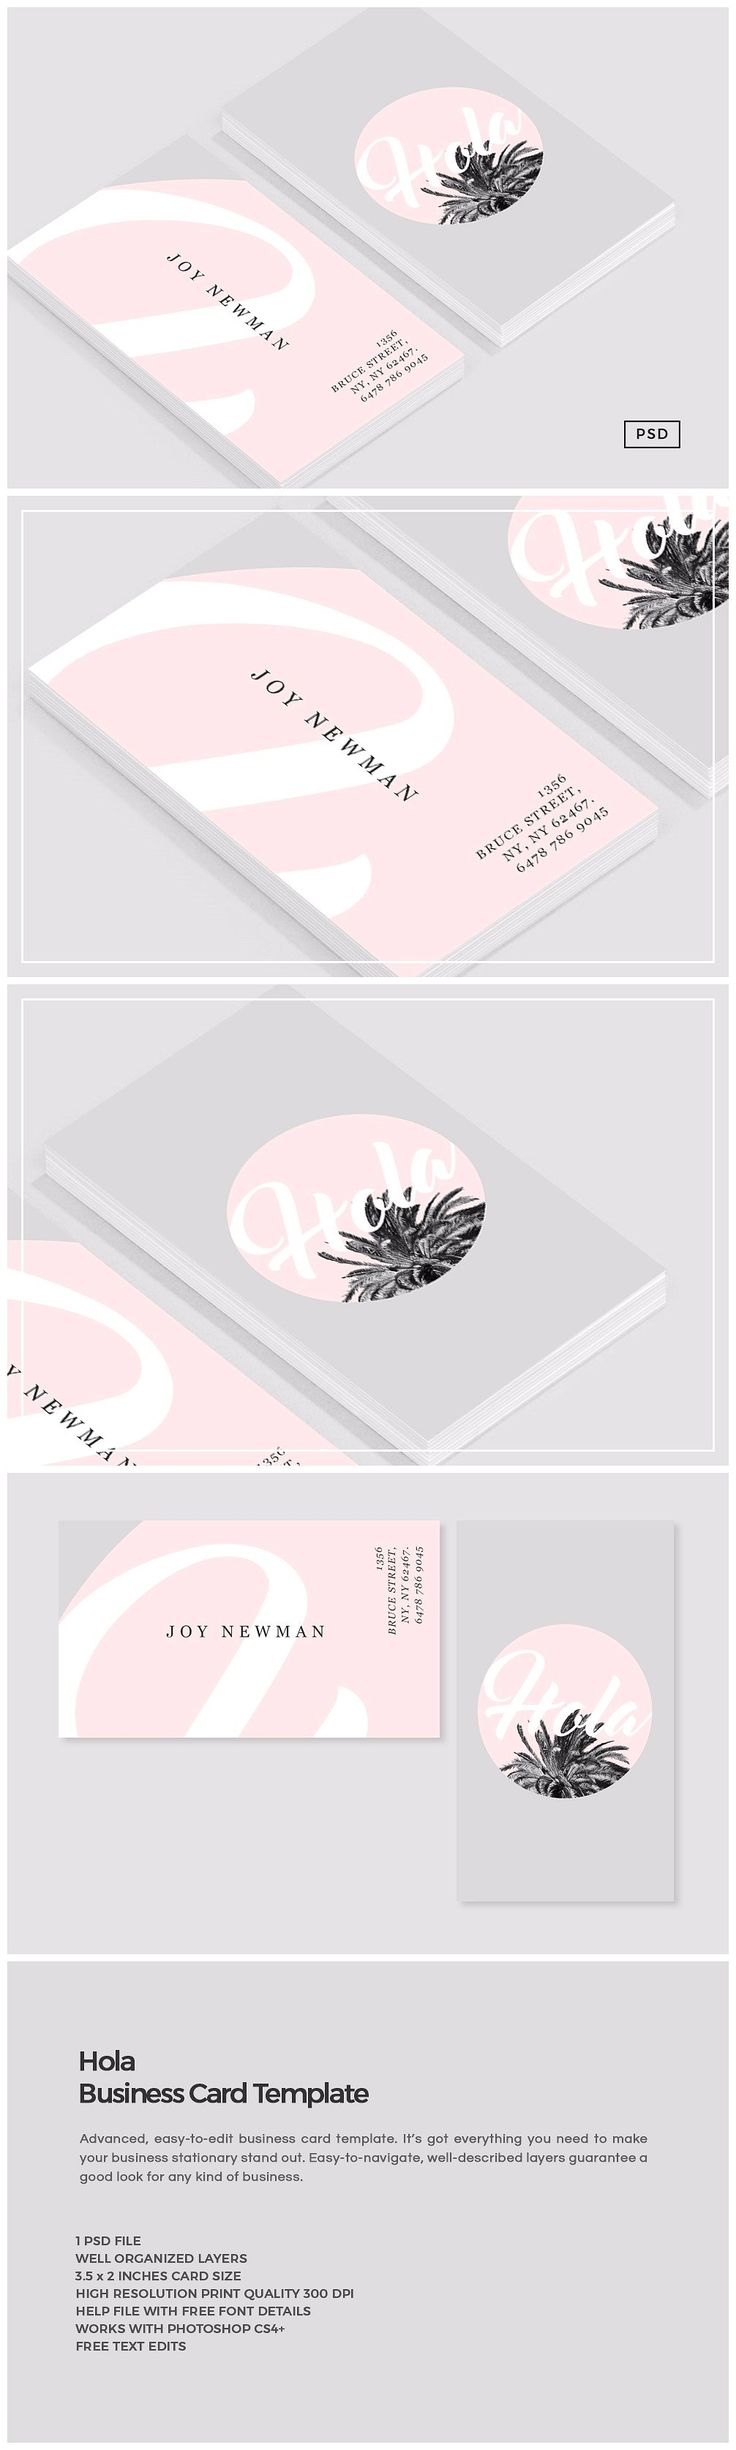 Hola Business Card Template by The Design Label on Creative Market